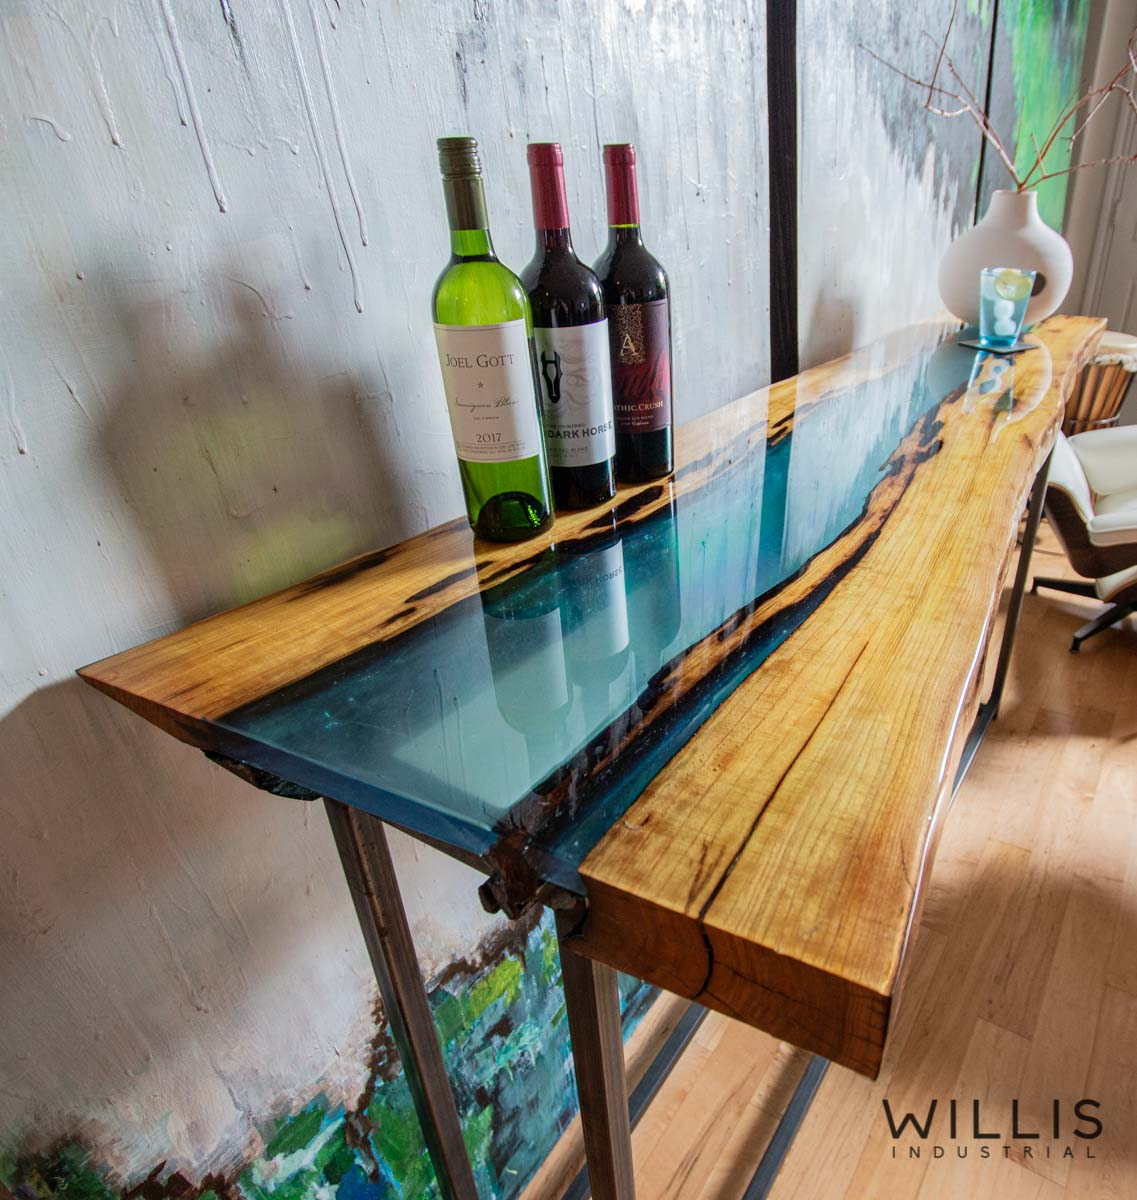 Willis Industrial Furniture | Rustic, Modern Furniture | Mulberry Live Edge with Blue Transparent Metallic Epoxy & Custom Steel Base